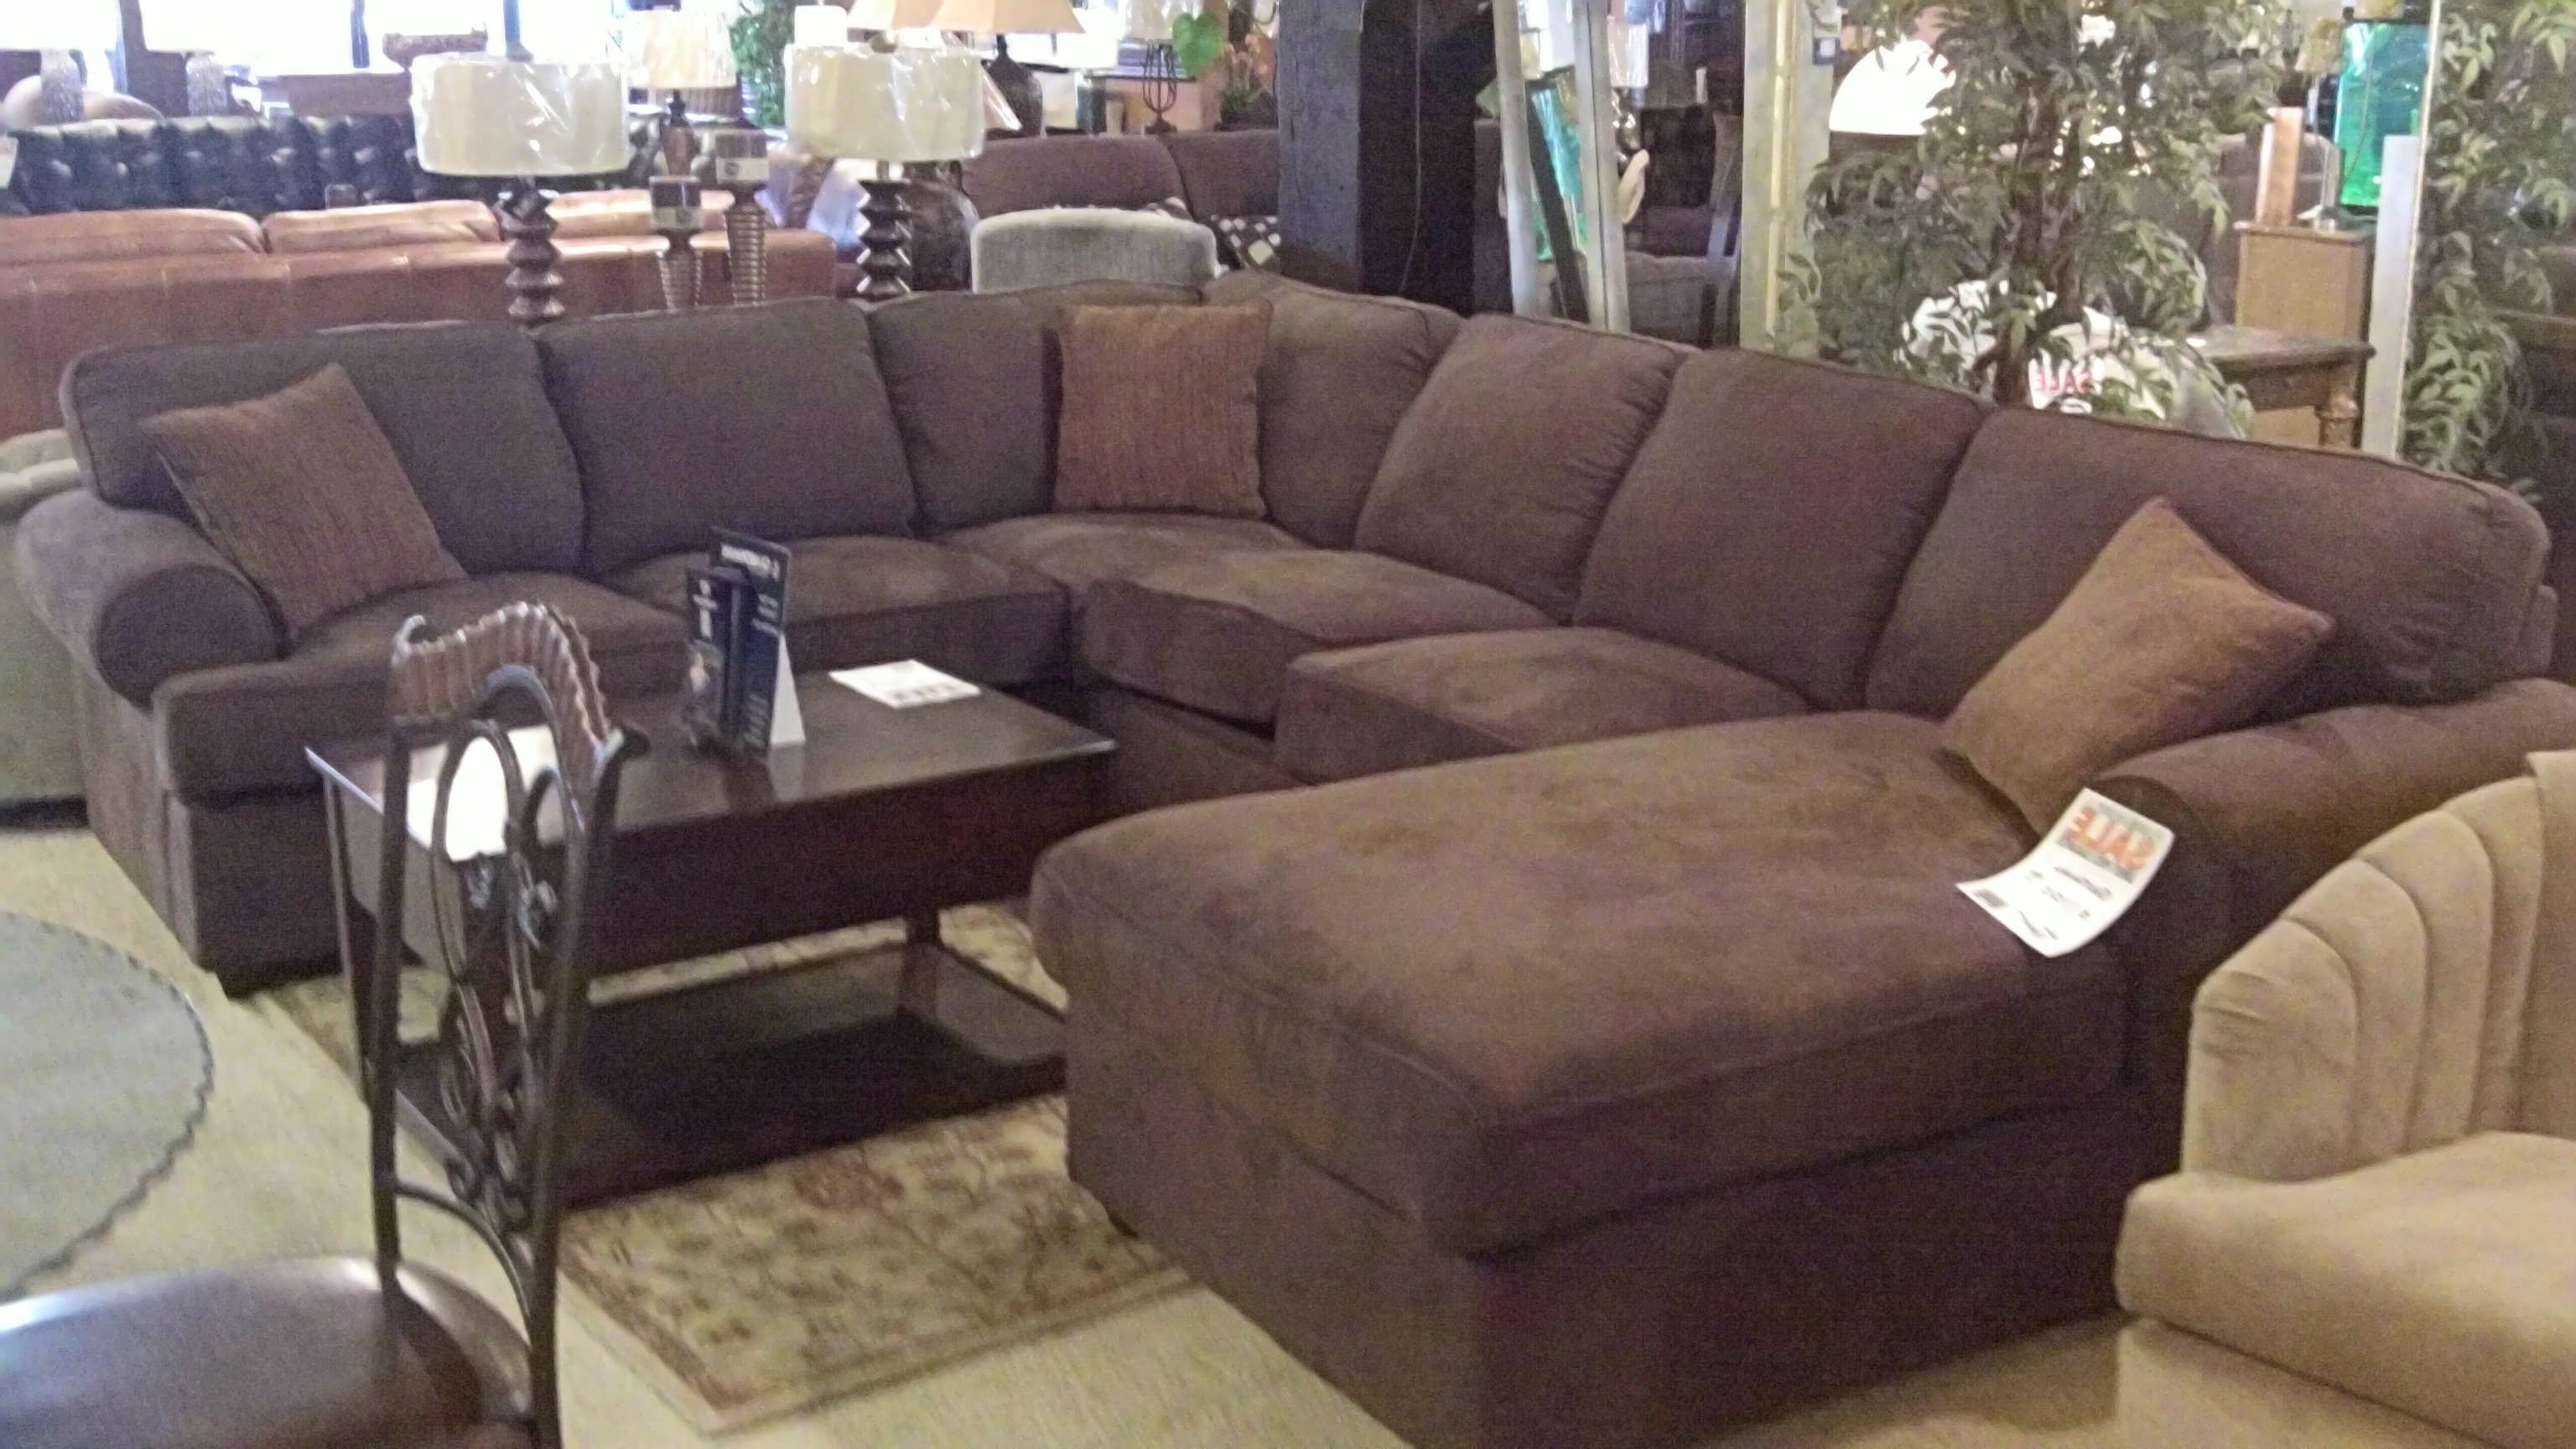 Sofa : Reclining Sectional 2 Piece Sectional Sofa Affordable Intended For Latest Sofa Sectionals With Chaise (View 8 of 15)